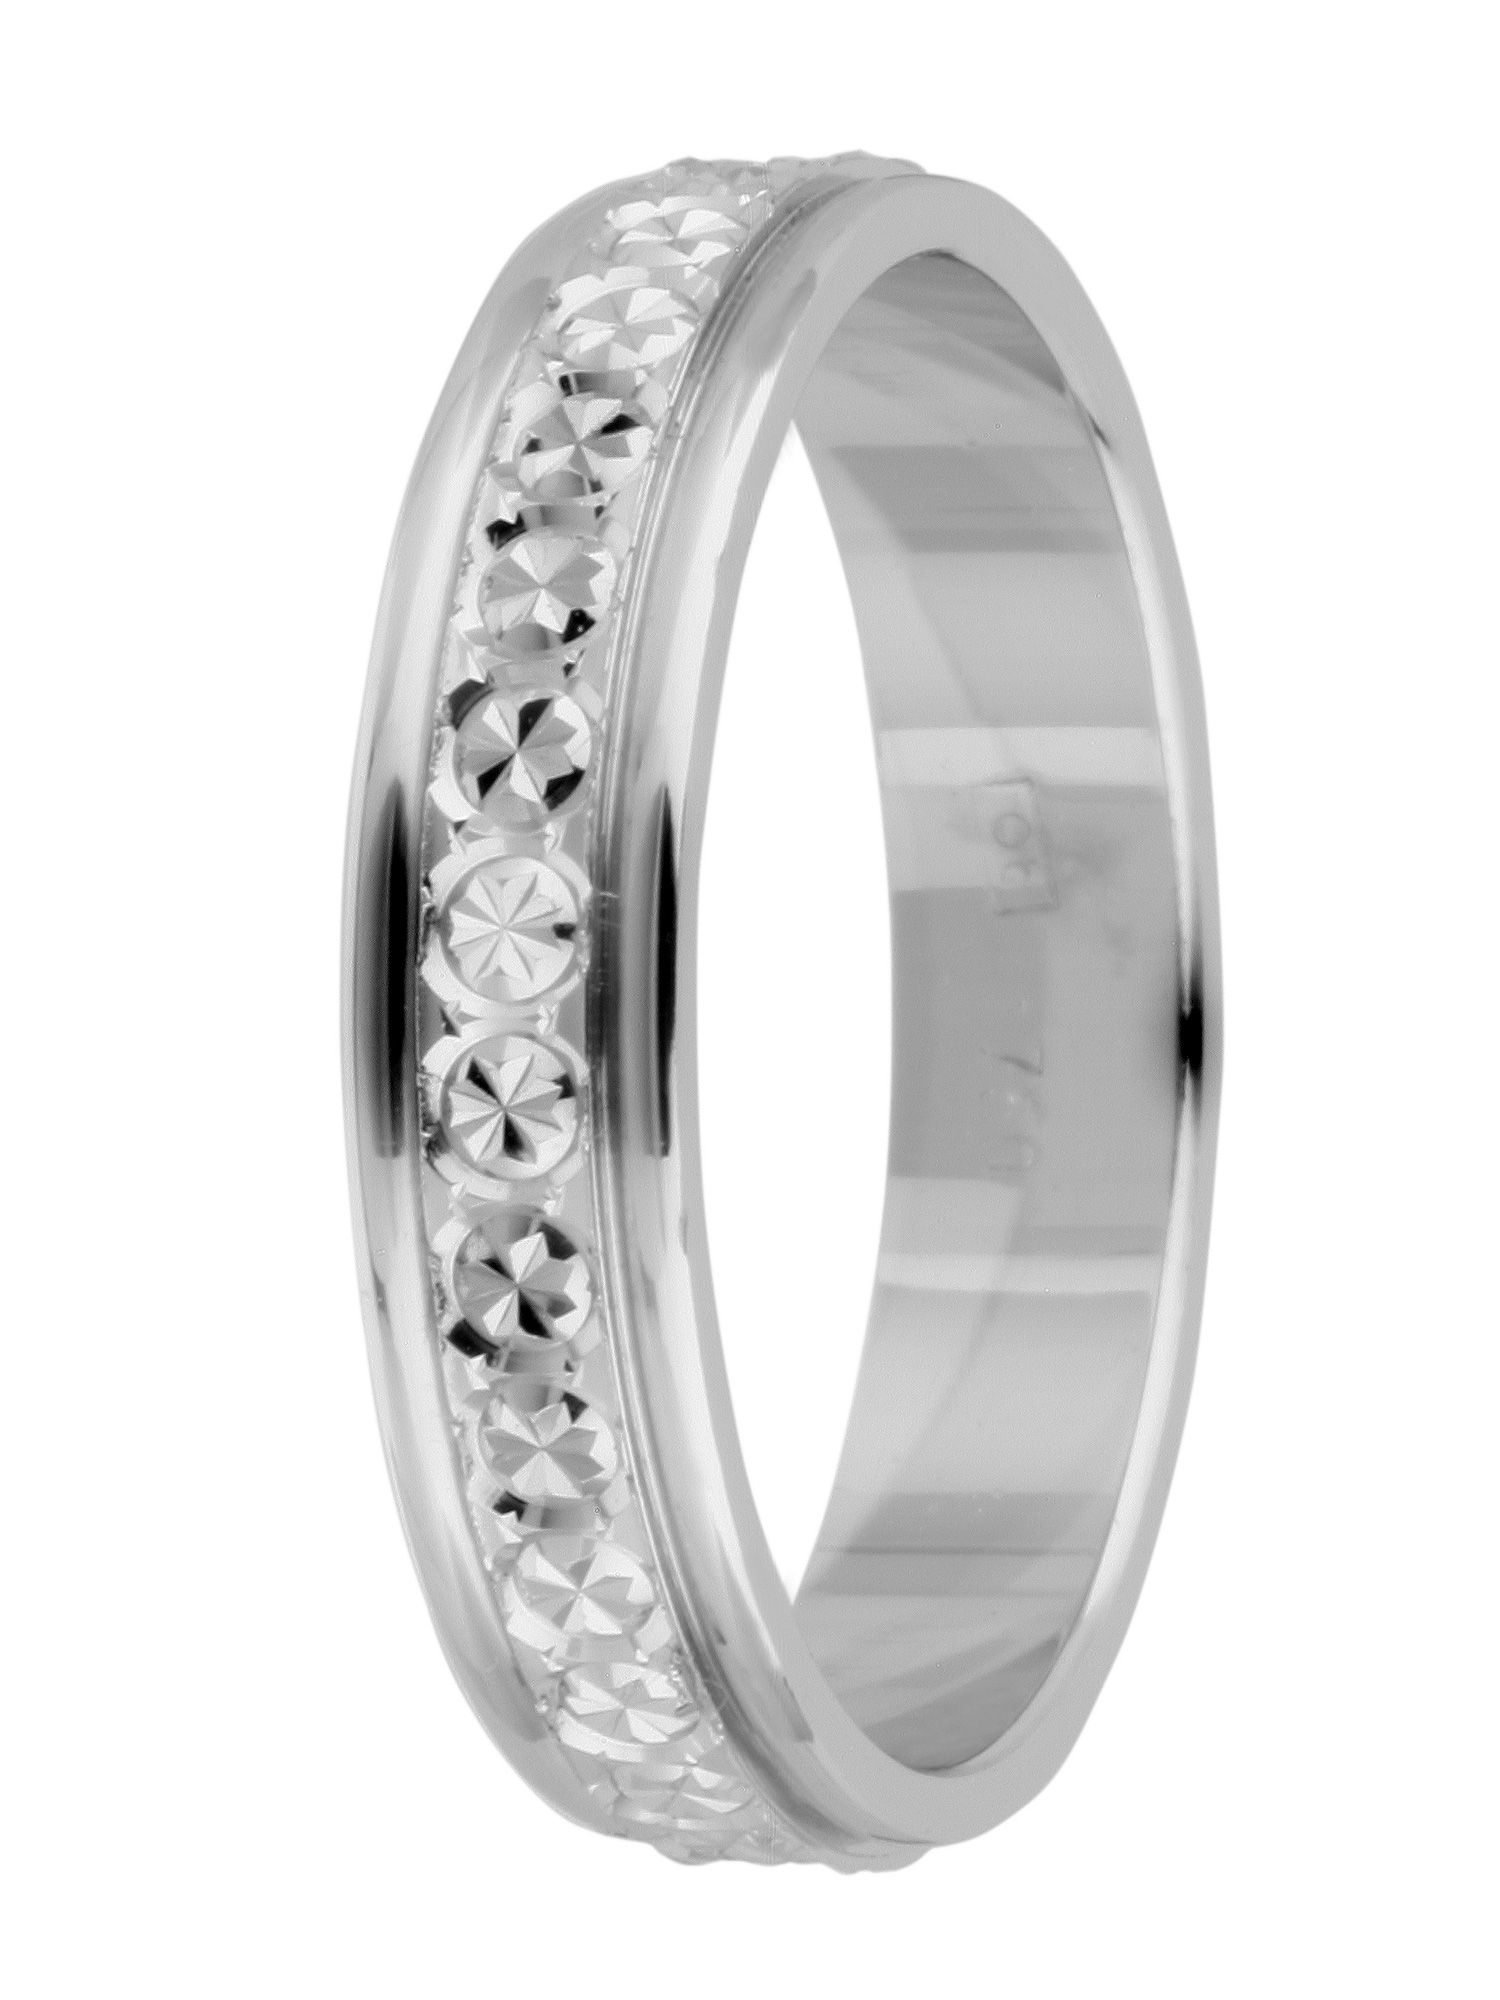 Brides 18ct gold sparkle cut wedding ring - White Gold